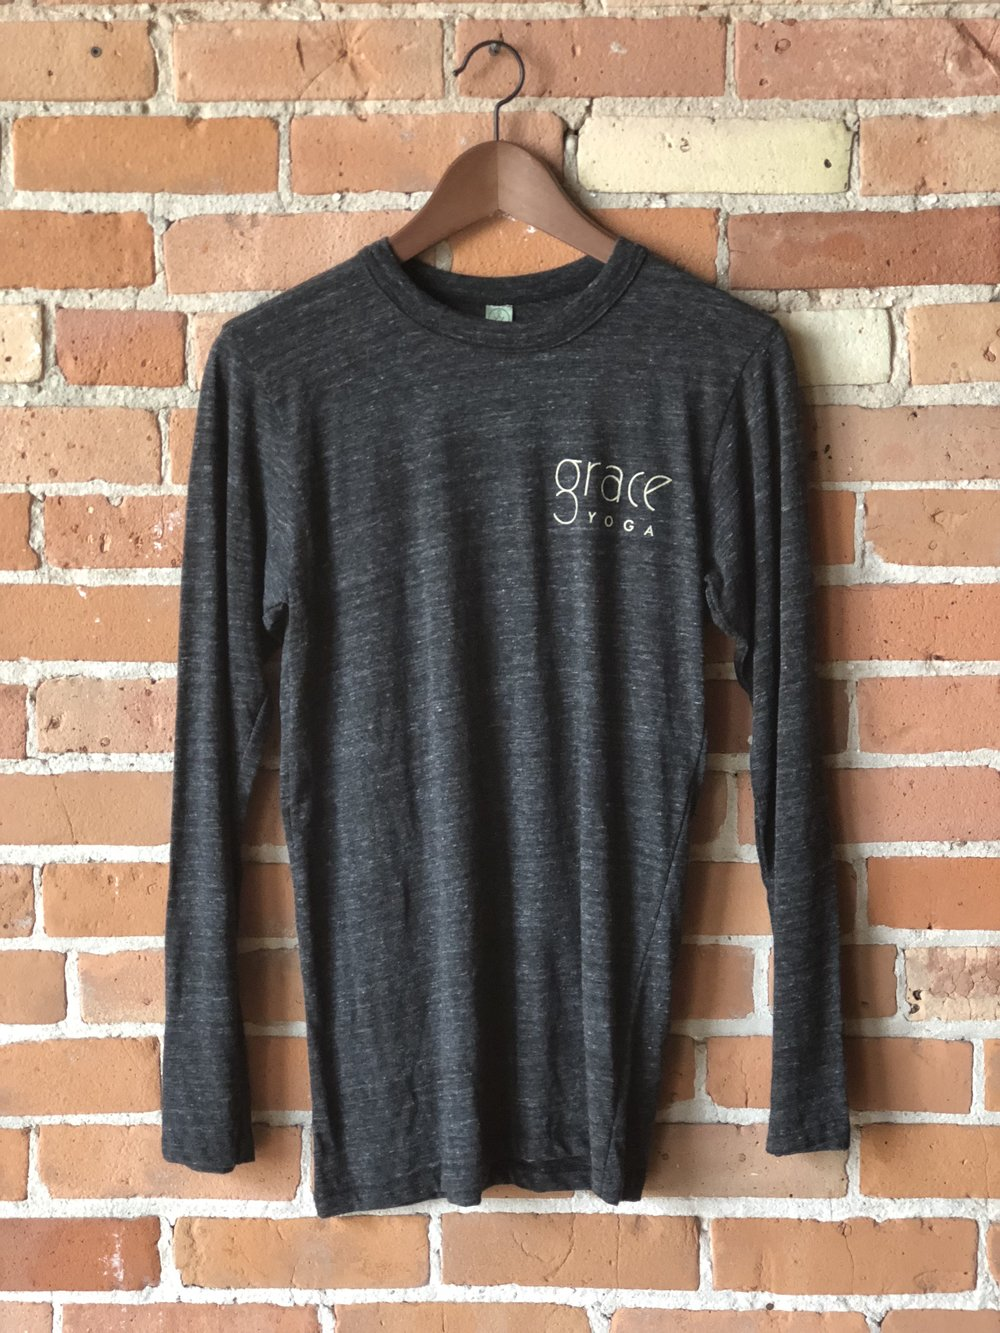 - Grace Yoga Unisex Long Sleeve Grey T-Shirt$35